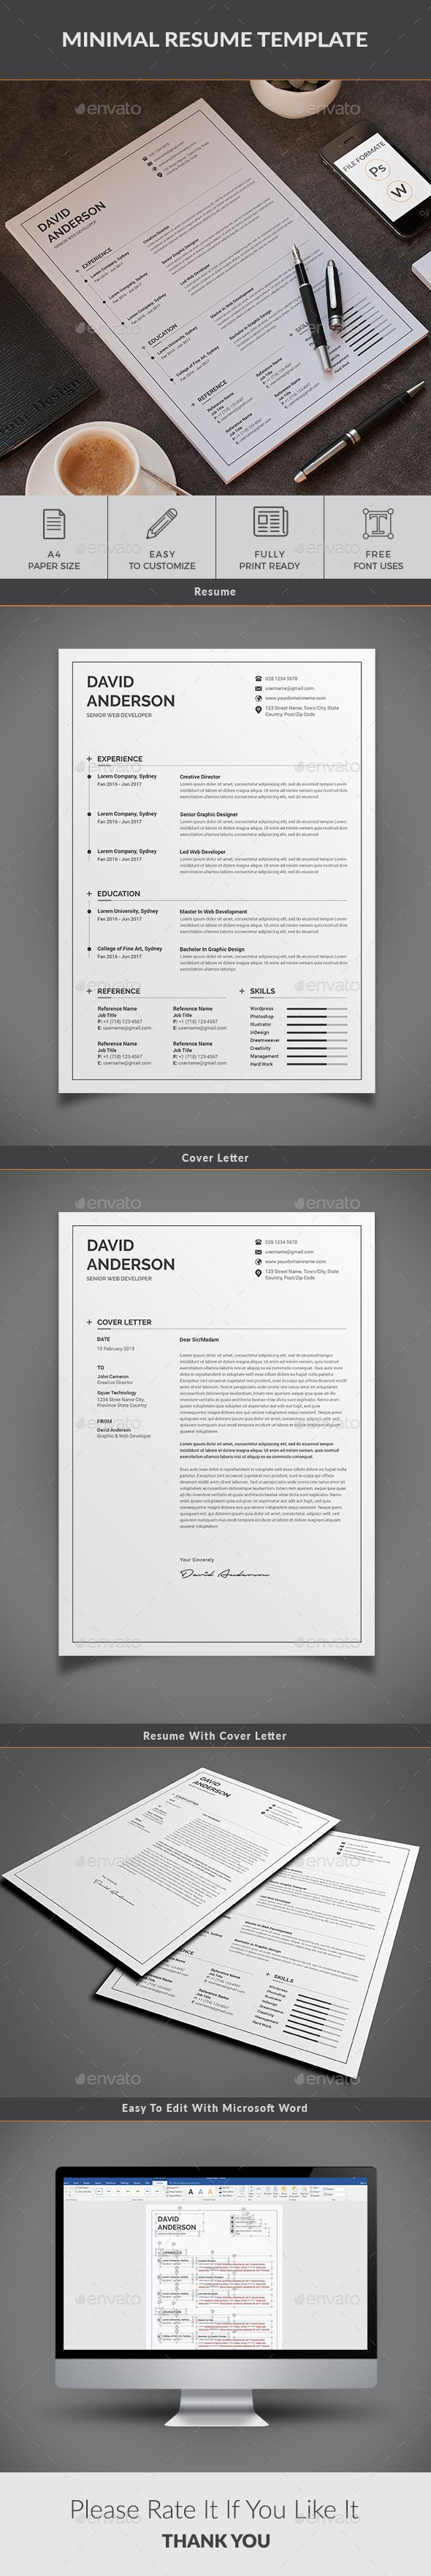 107 best Most Professional Resume Templates images on Pinterest ...